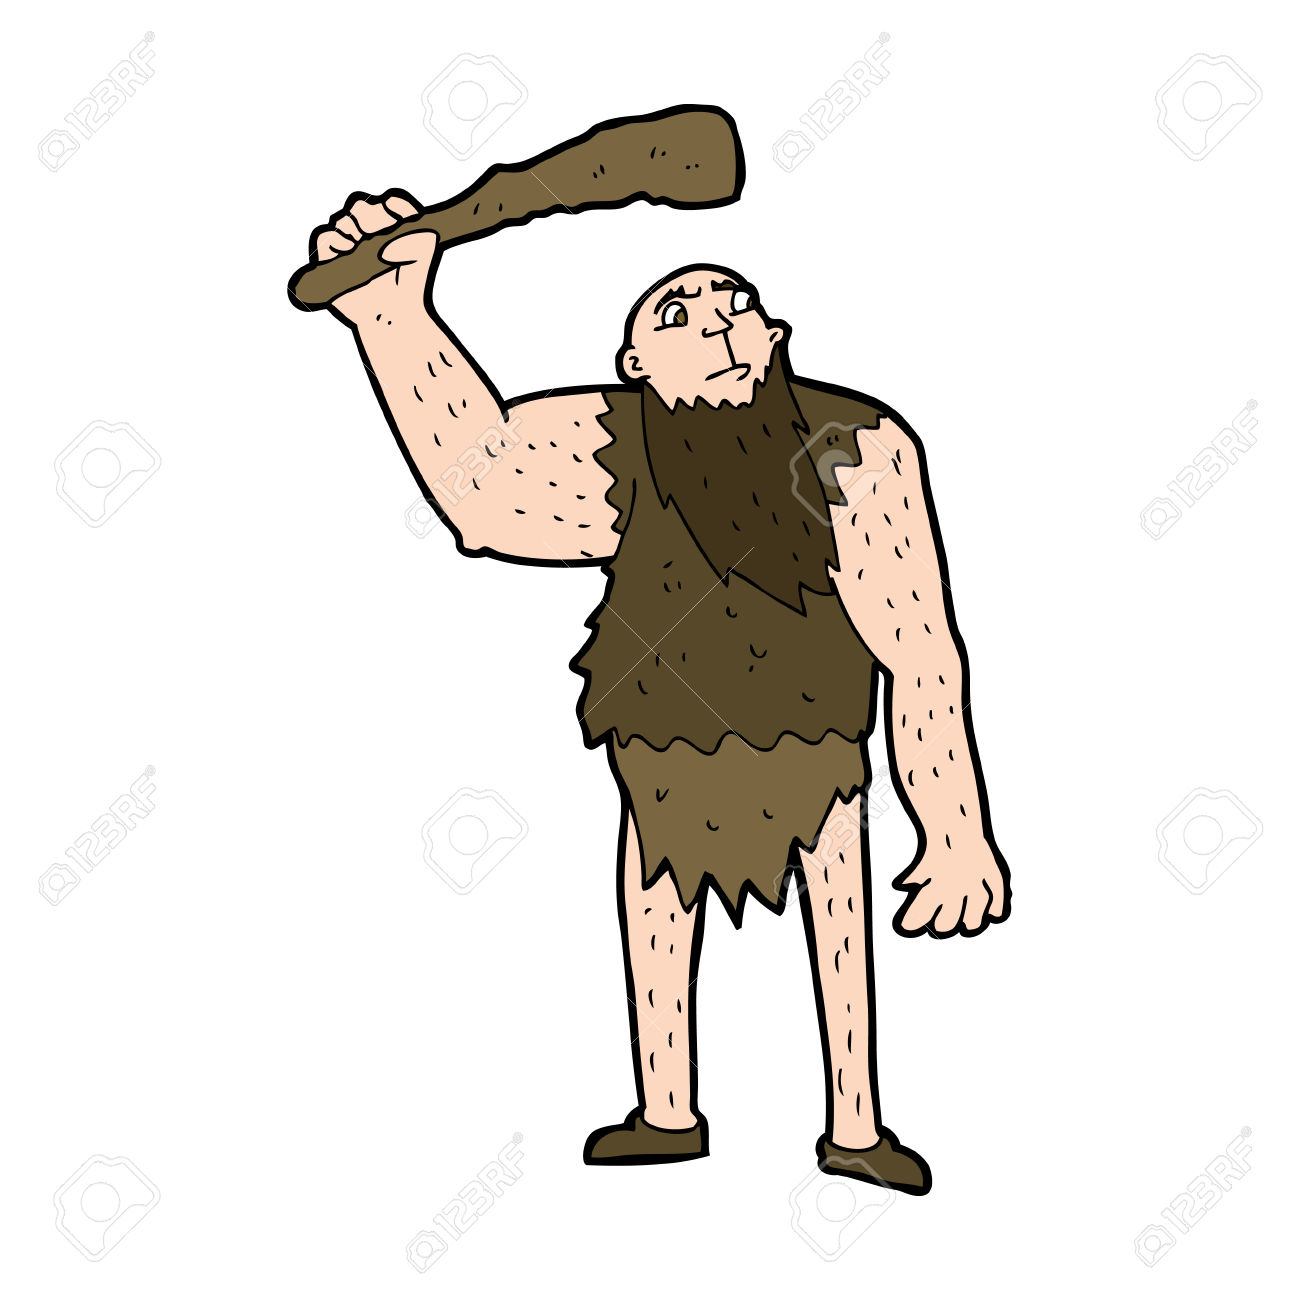 Cartoon Neanderthal Royalty Free Cliparts, Vectors, And Stock.